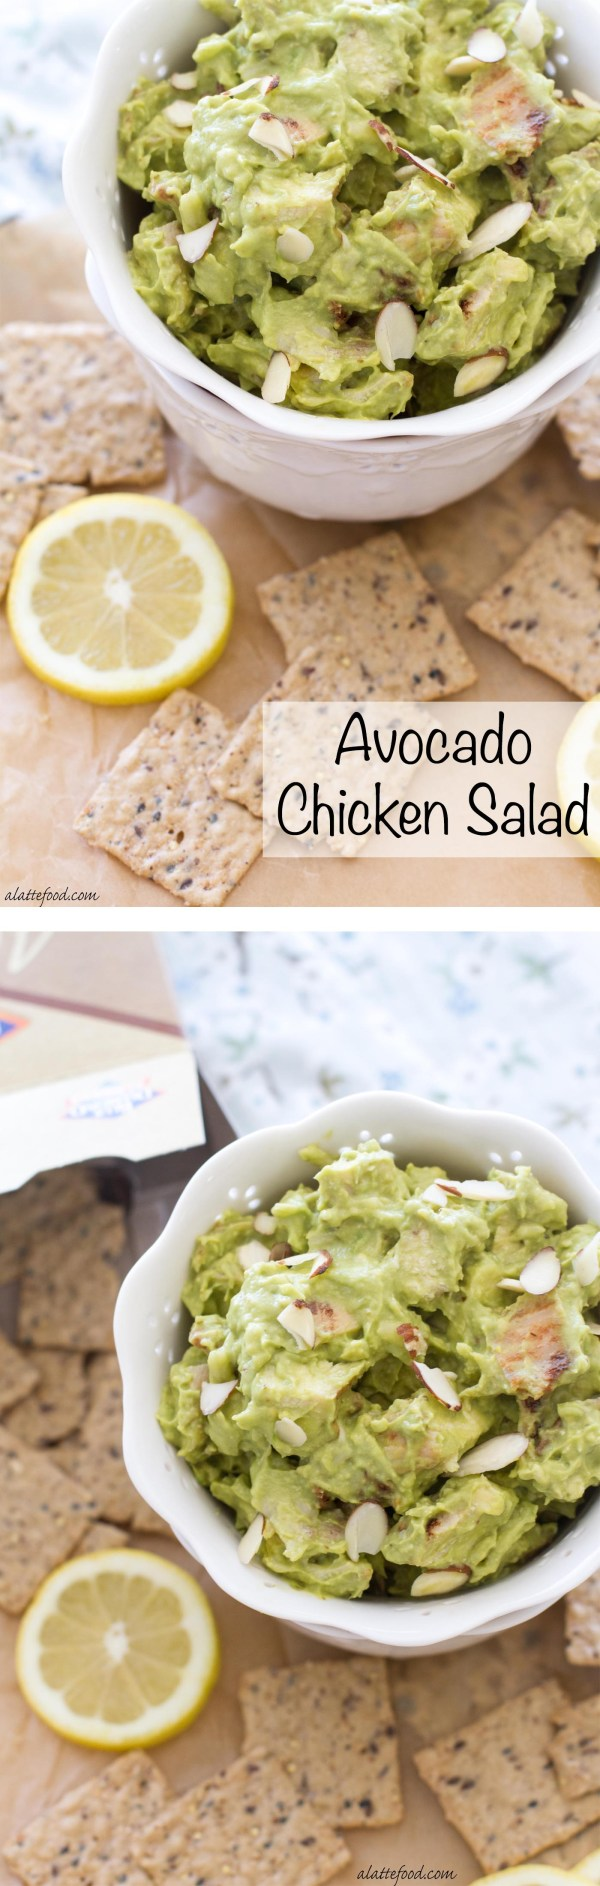 This simple chicken salad is made with avocado, sour cream, lemon juice, almonds, and pepper jack cheese.   www.alattefood.com